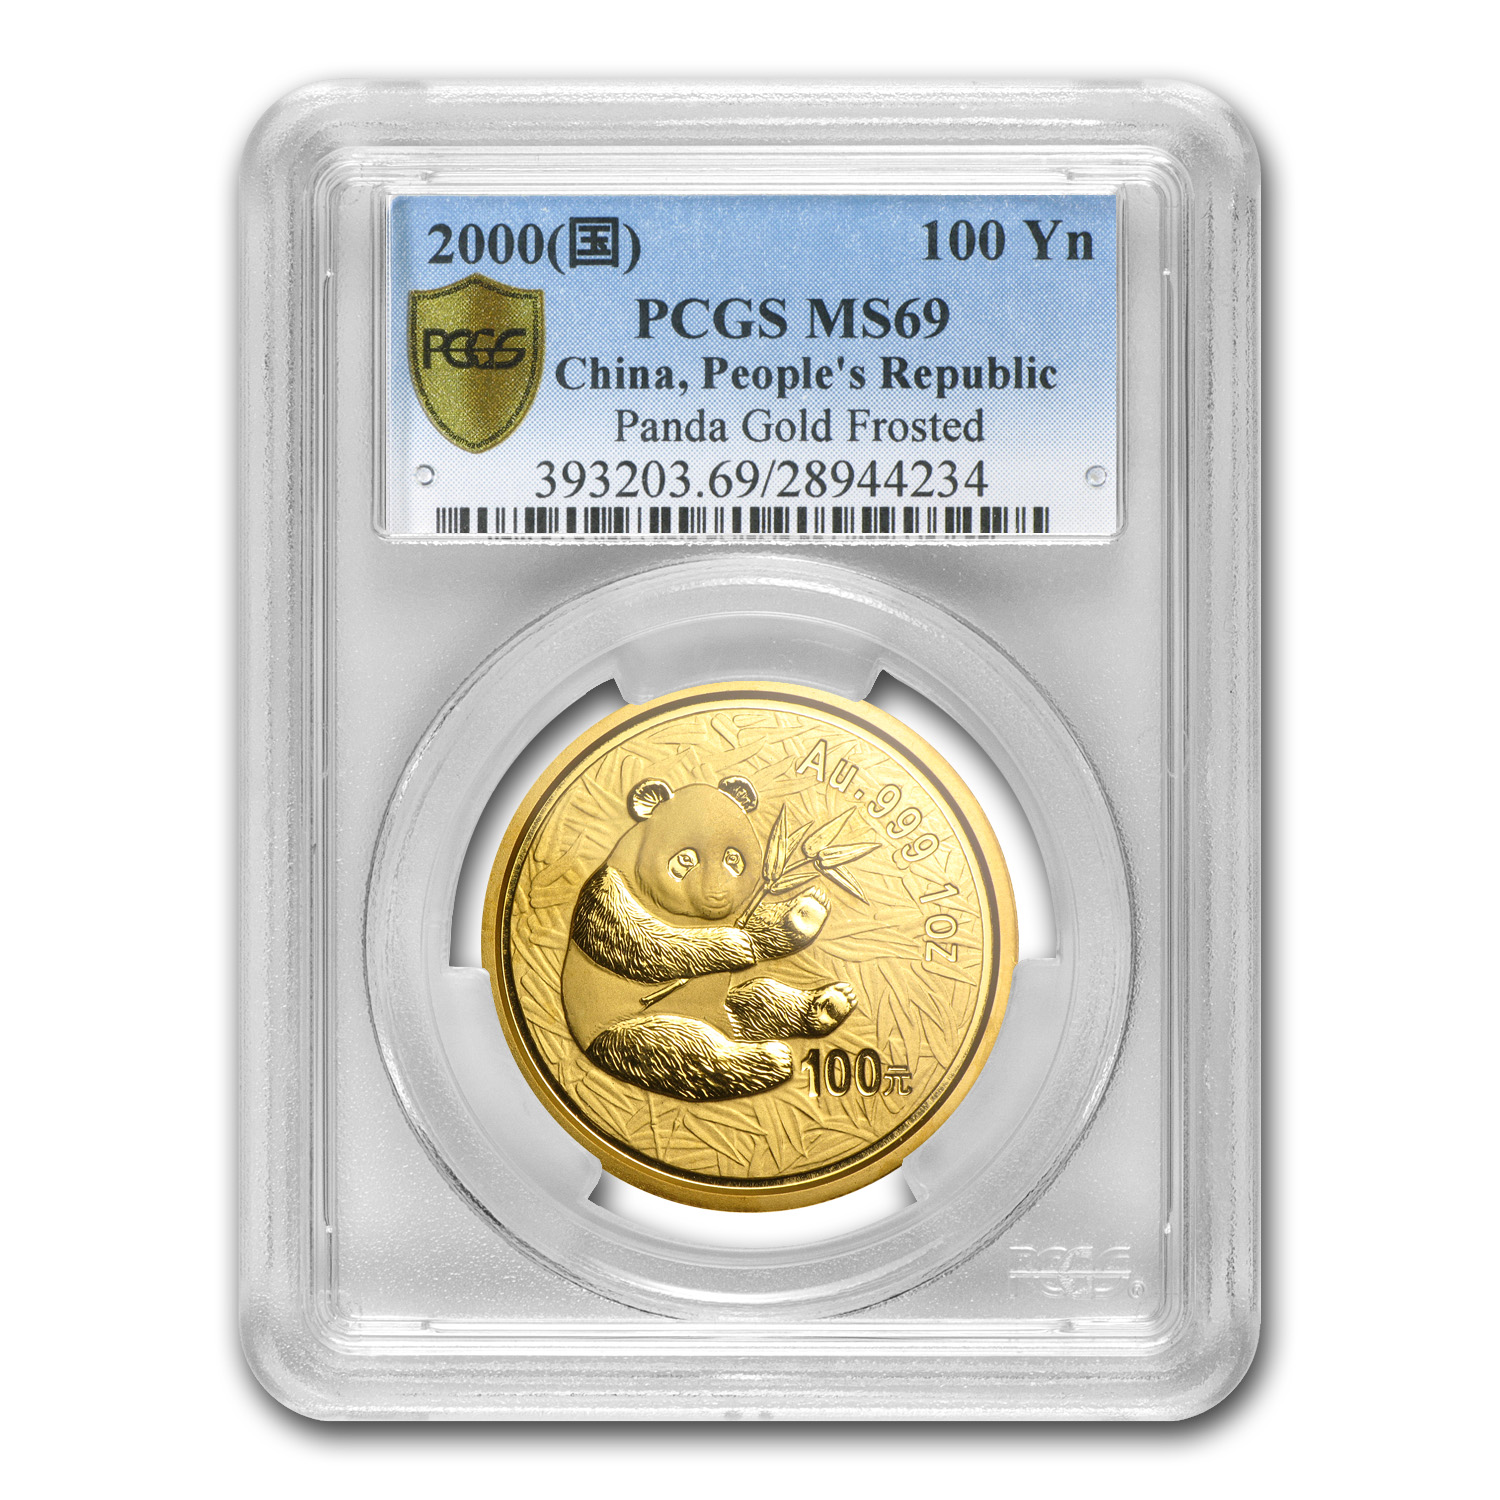 2000 1 oz Gold Chinese Panda Frosted Ring MS-69 PCGS